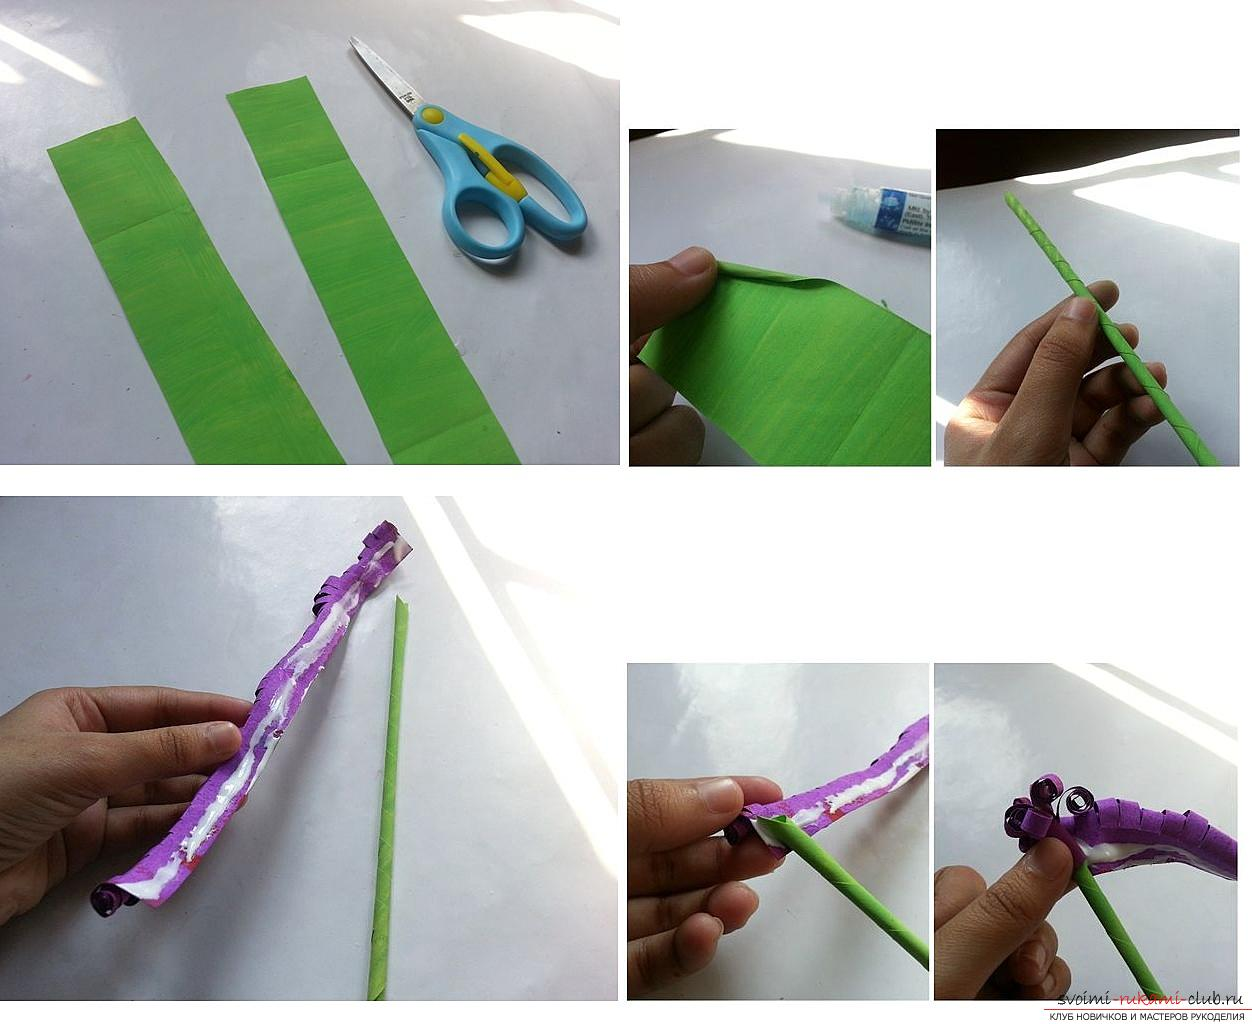 How to make your own hands beautiful and original crafts using kiwing techniques and others, step-by-step photos and instructions for creating paper crafts. Photo Number 19